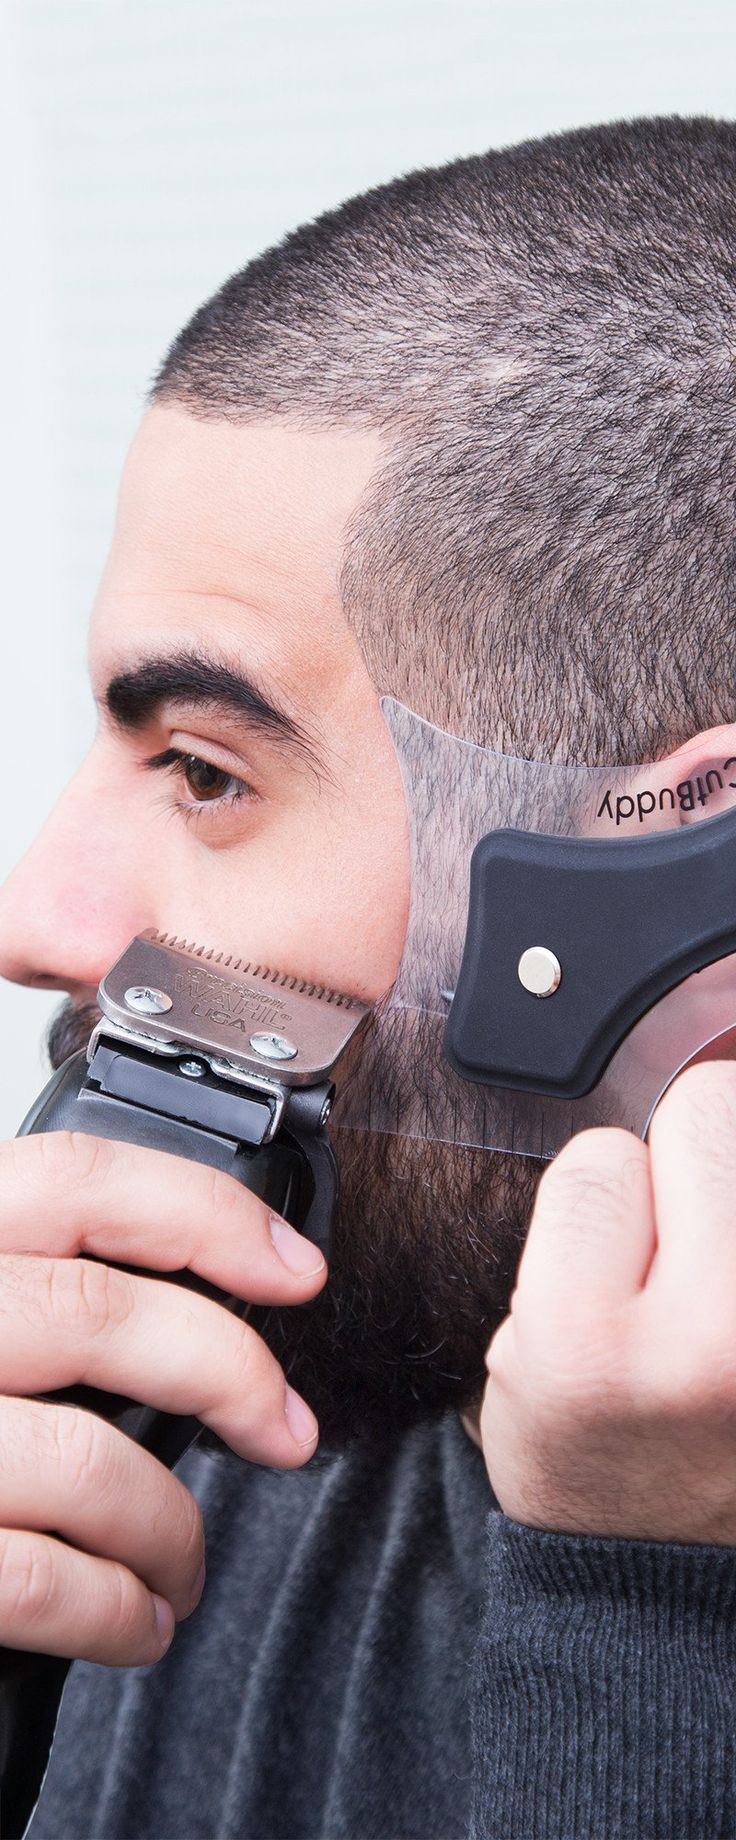 Get a sharp-looking hair and beard line. This stencil guides your razor or trimmer around traceable shapes for a clean, defined hair and beard line.